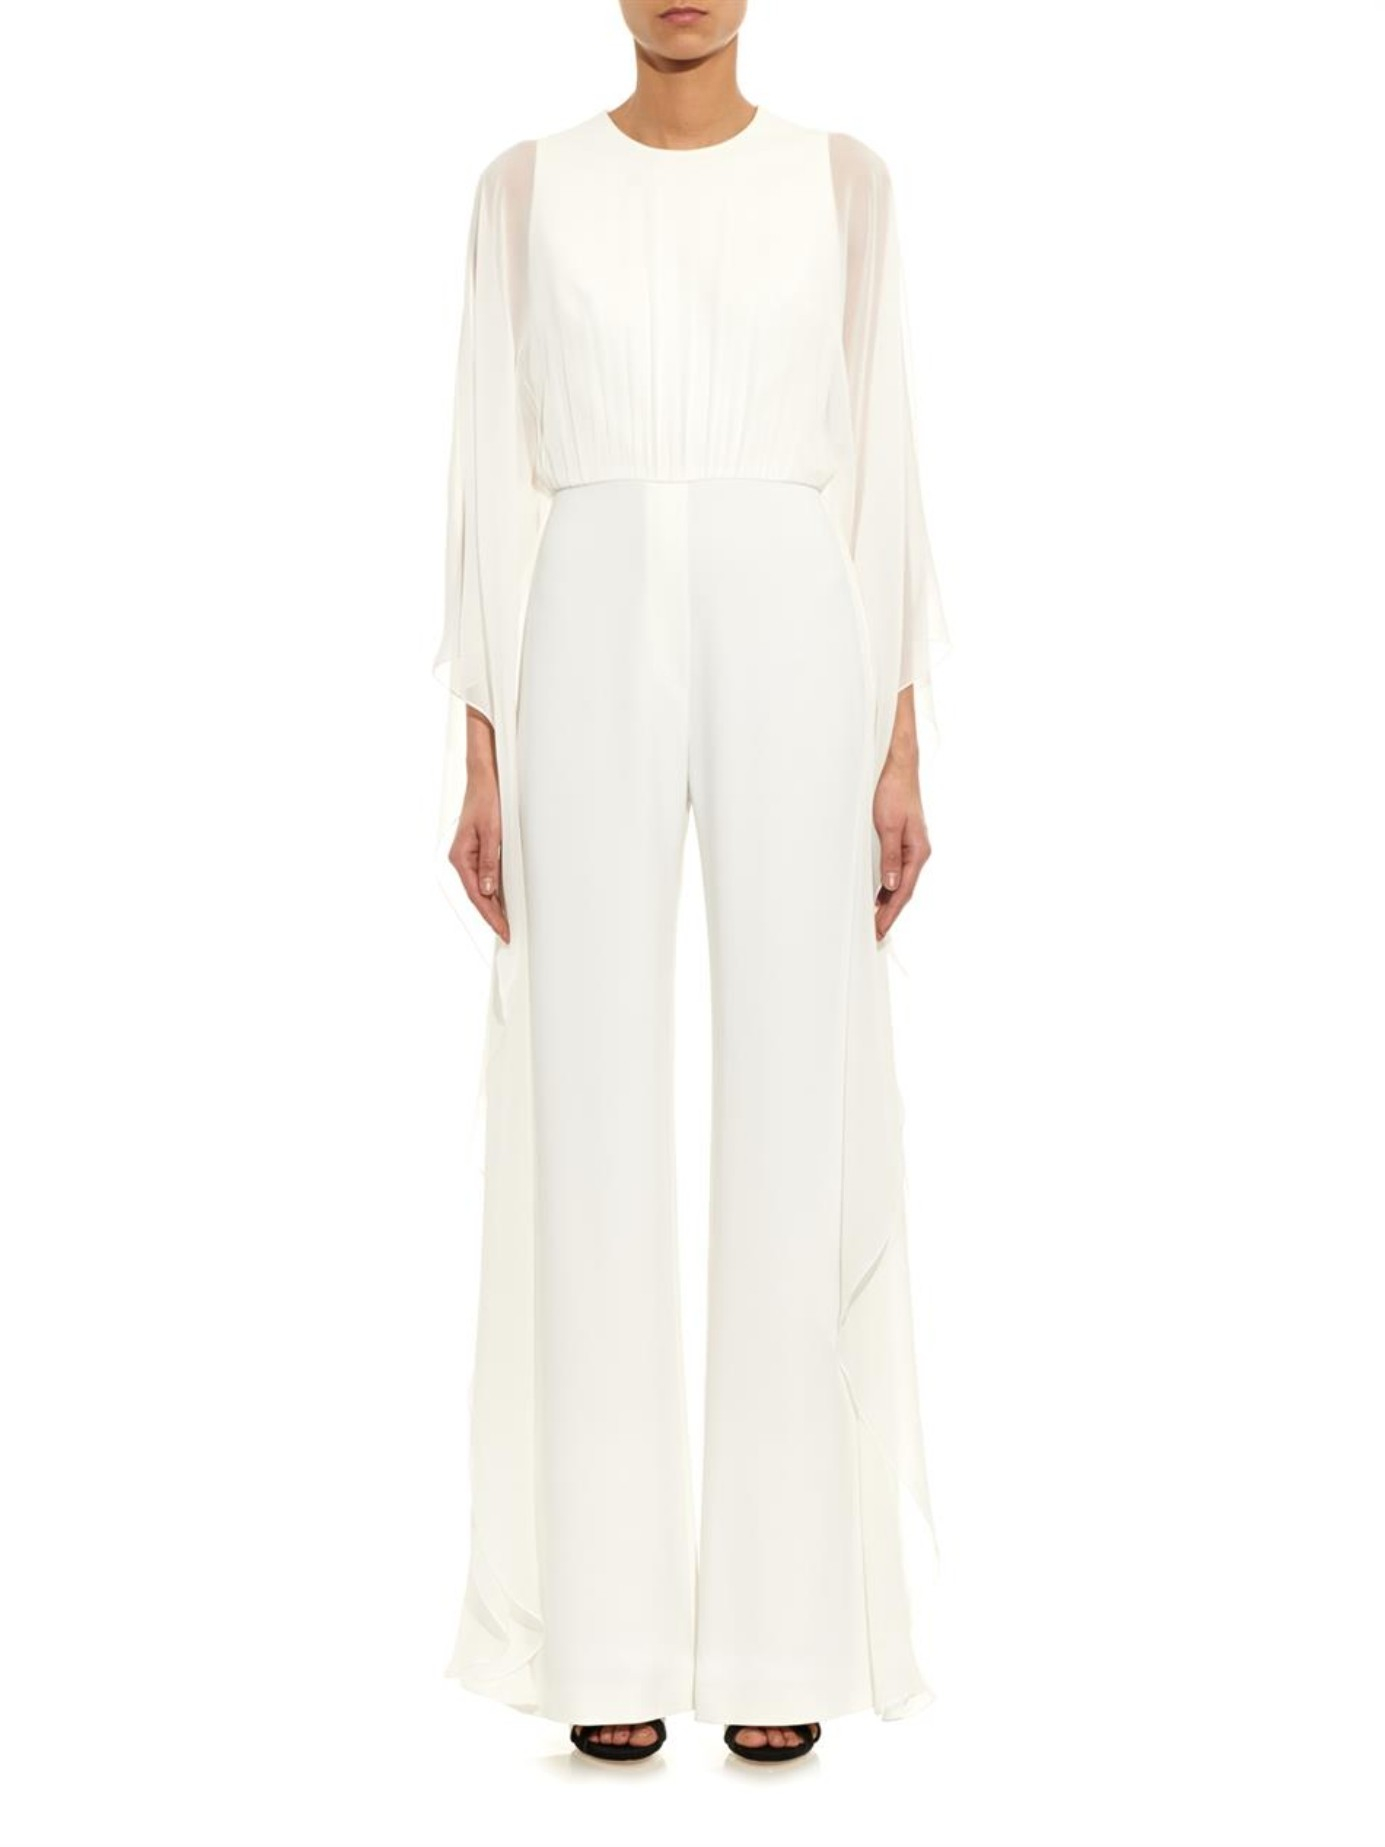 Lyst - Elie Saab Silk And Stretch-Cady Jumpsuit in White